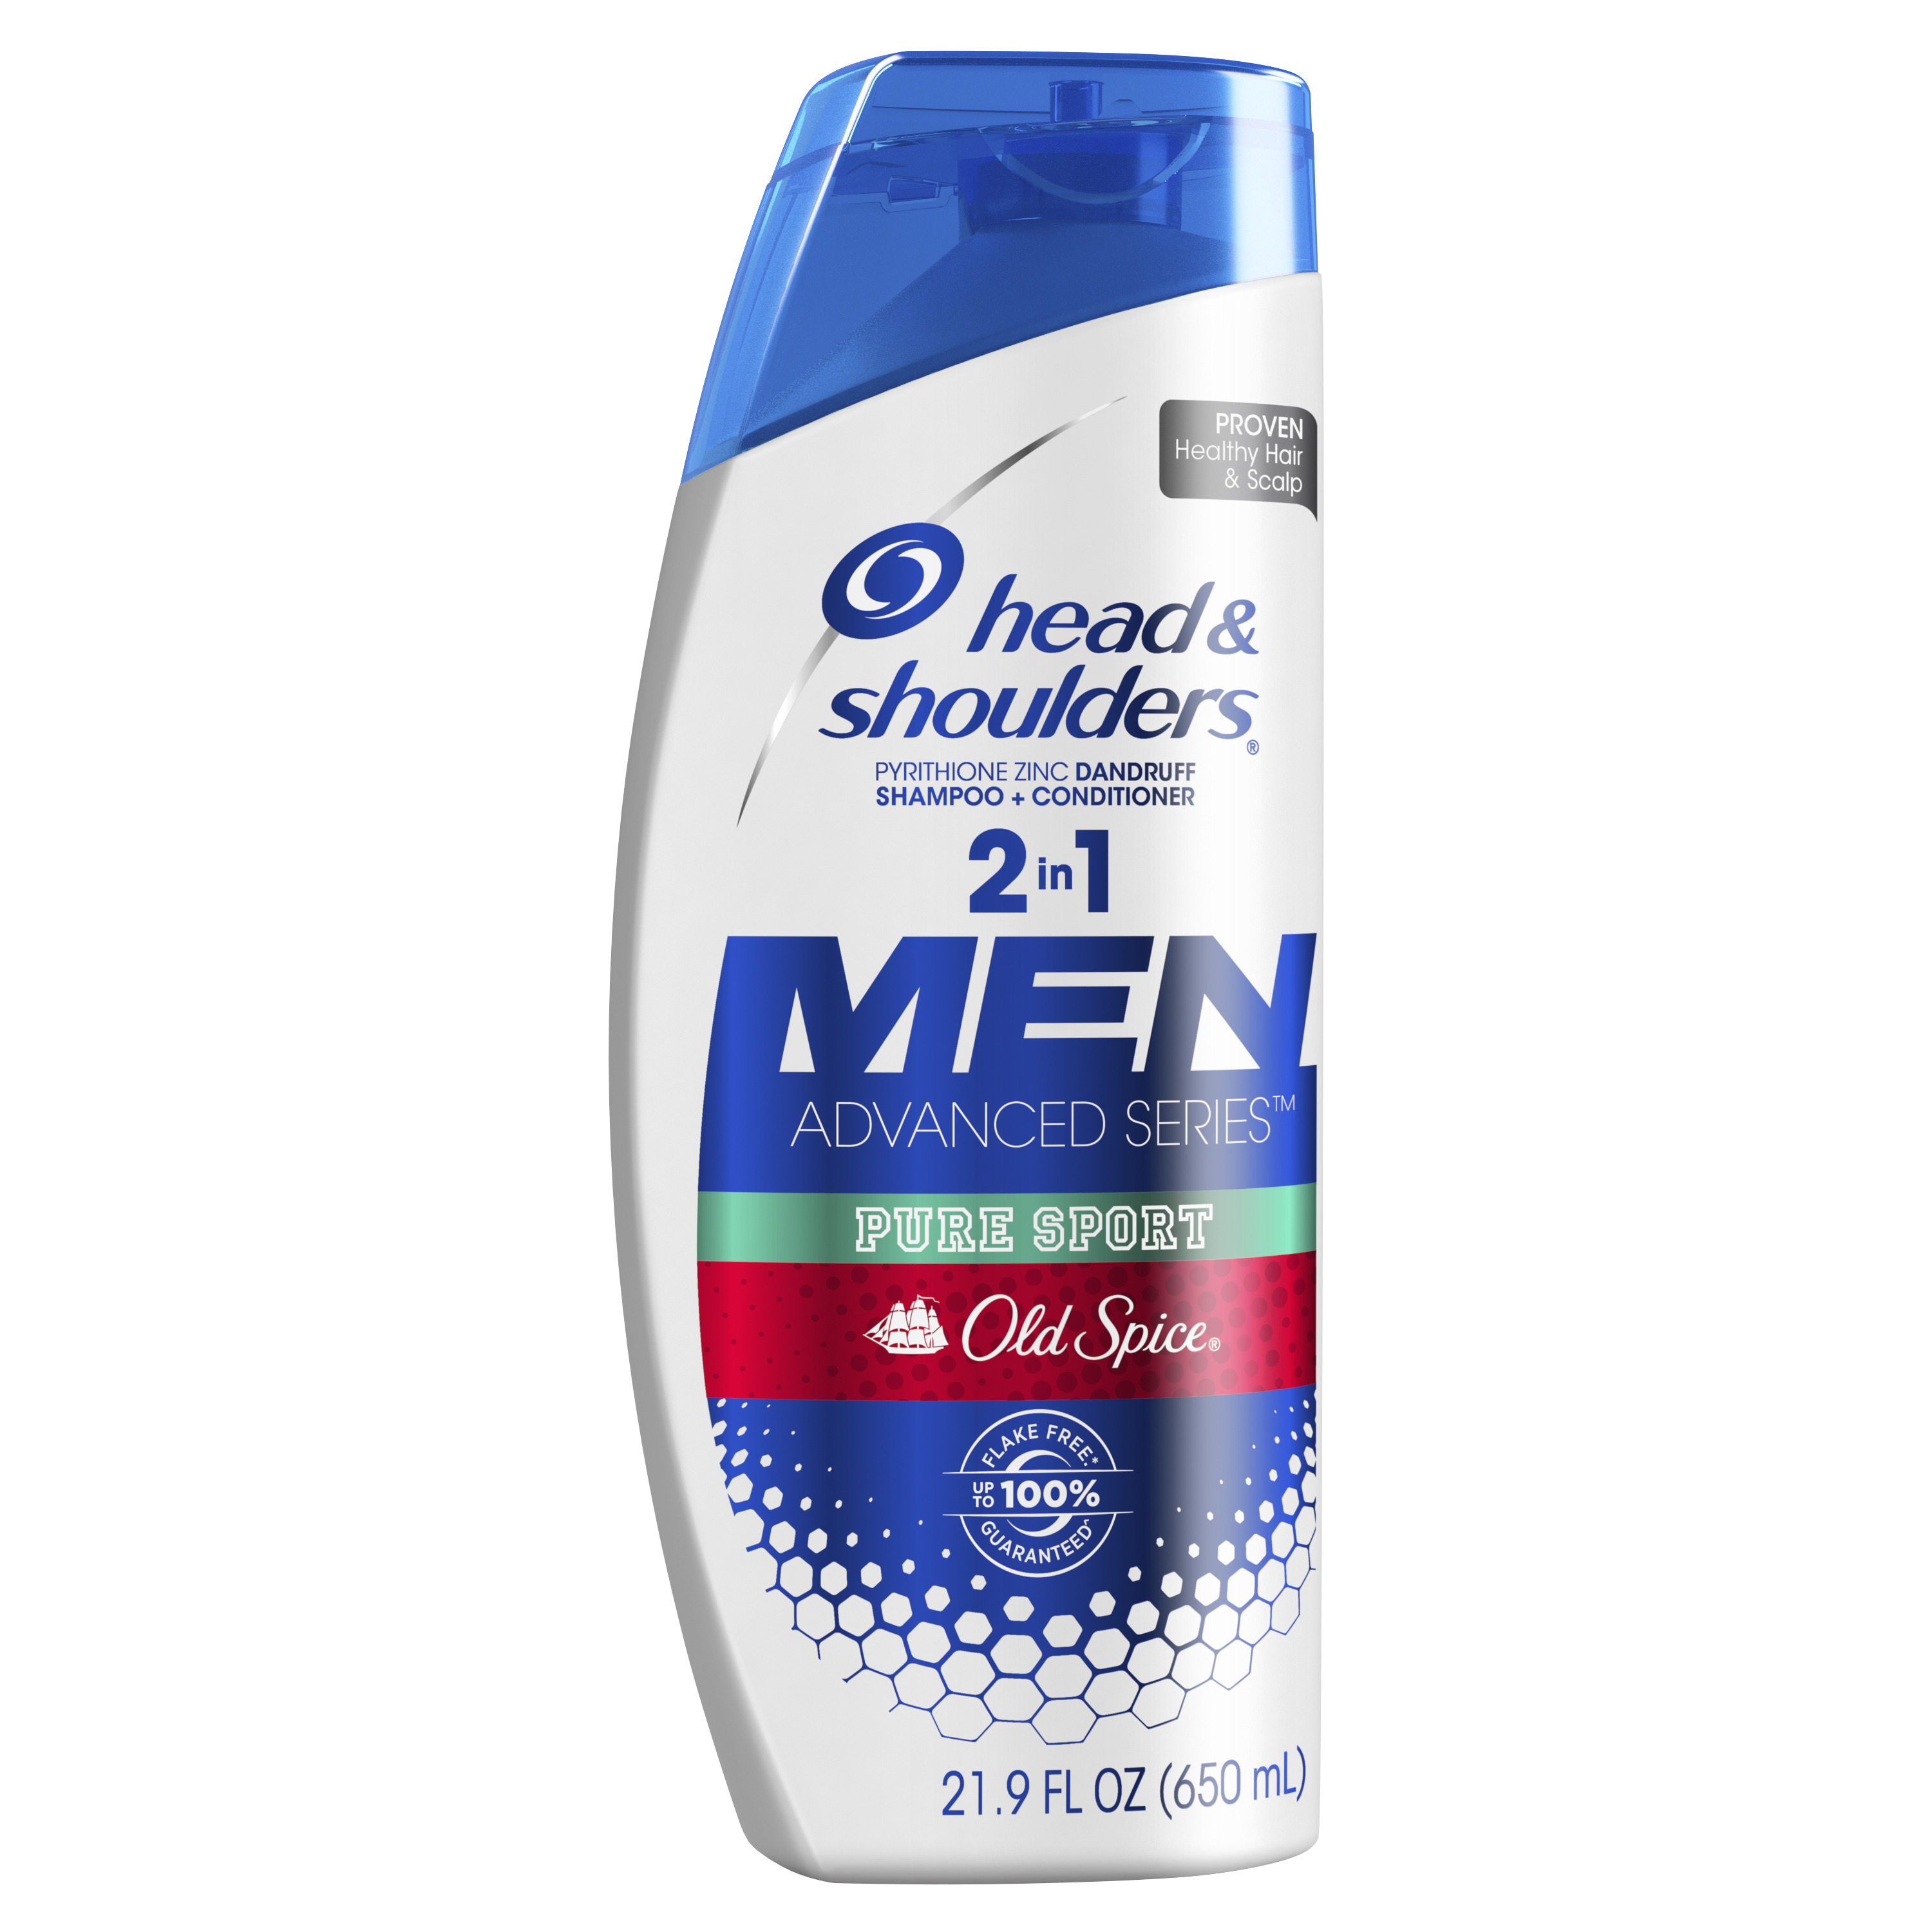 Head and Shoulders Old Spice Pure Sport Dandruff 2 in 1 Shampoo and Conditioner, 21.9 fl oz